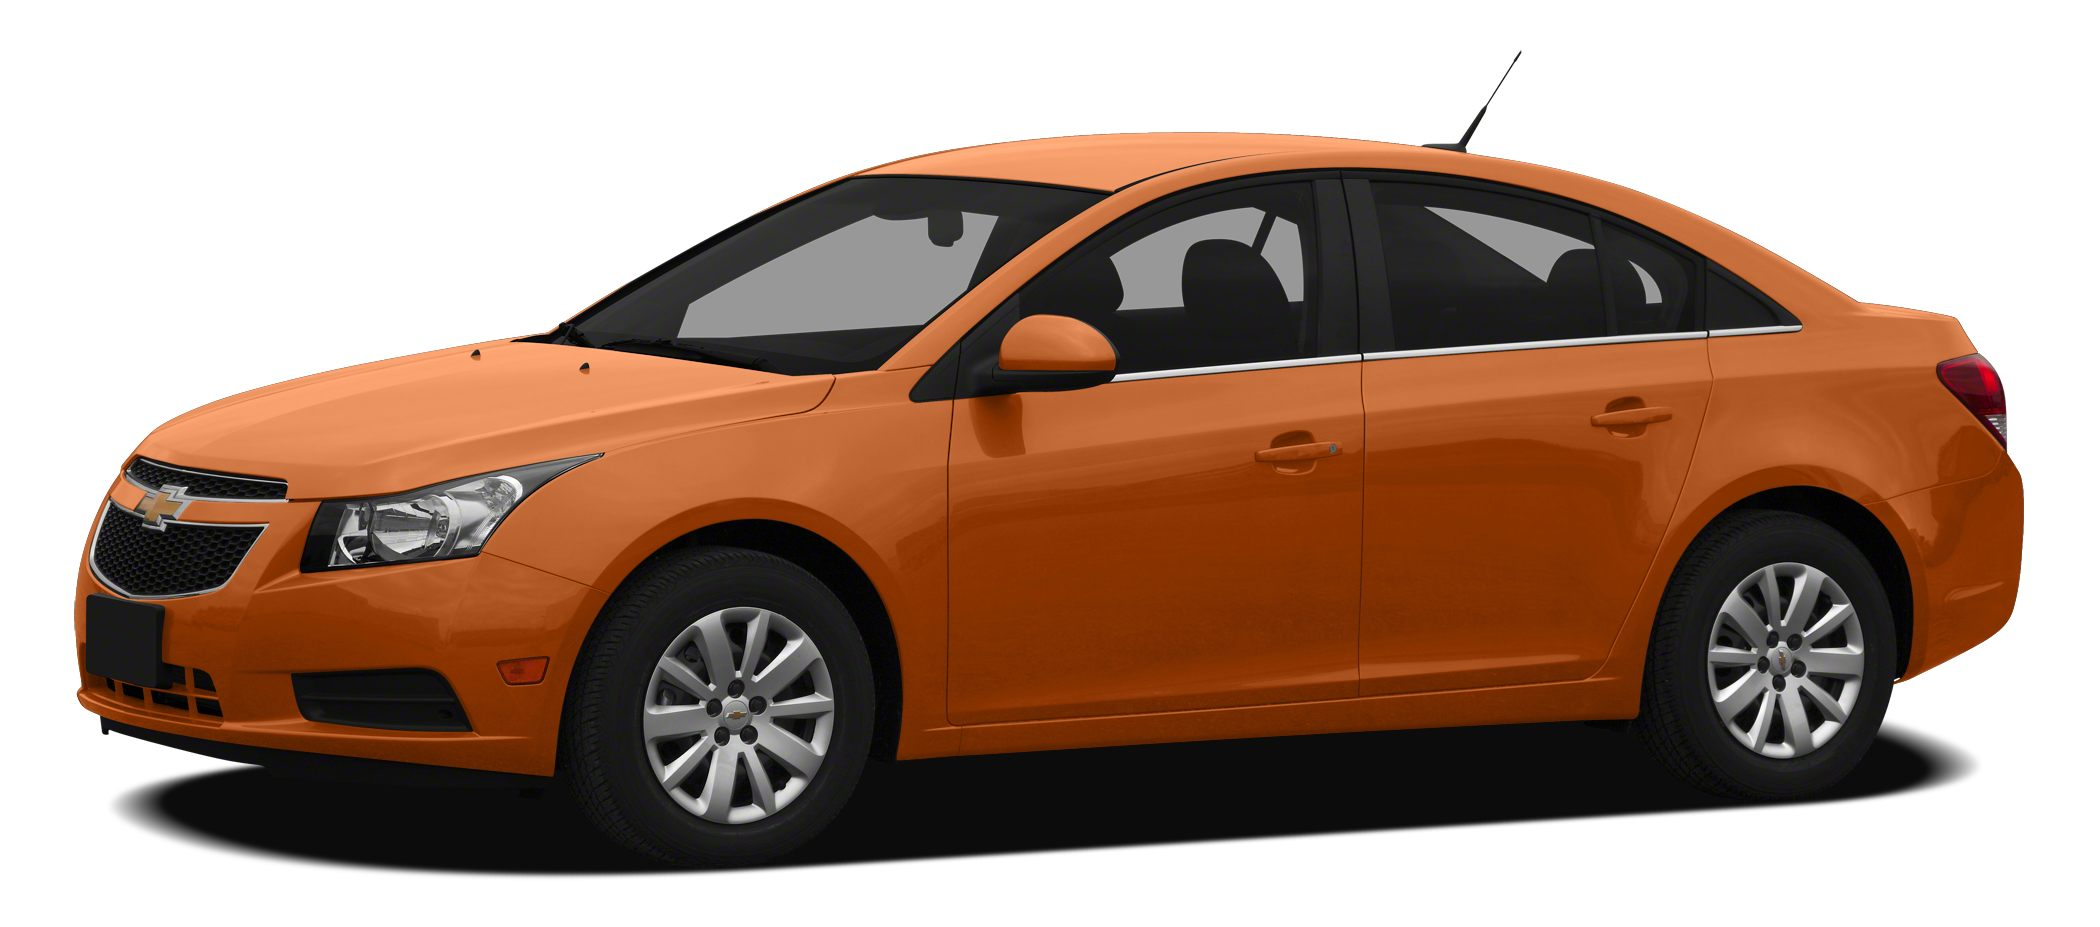 2012 Chevrolet Cruze 1LT This Certified 2012 Chevrolet Cruze LT w1LT is a brilliant example of qu